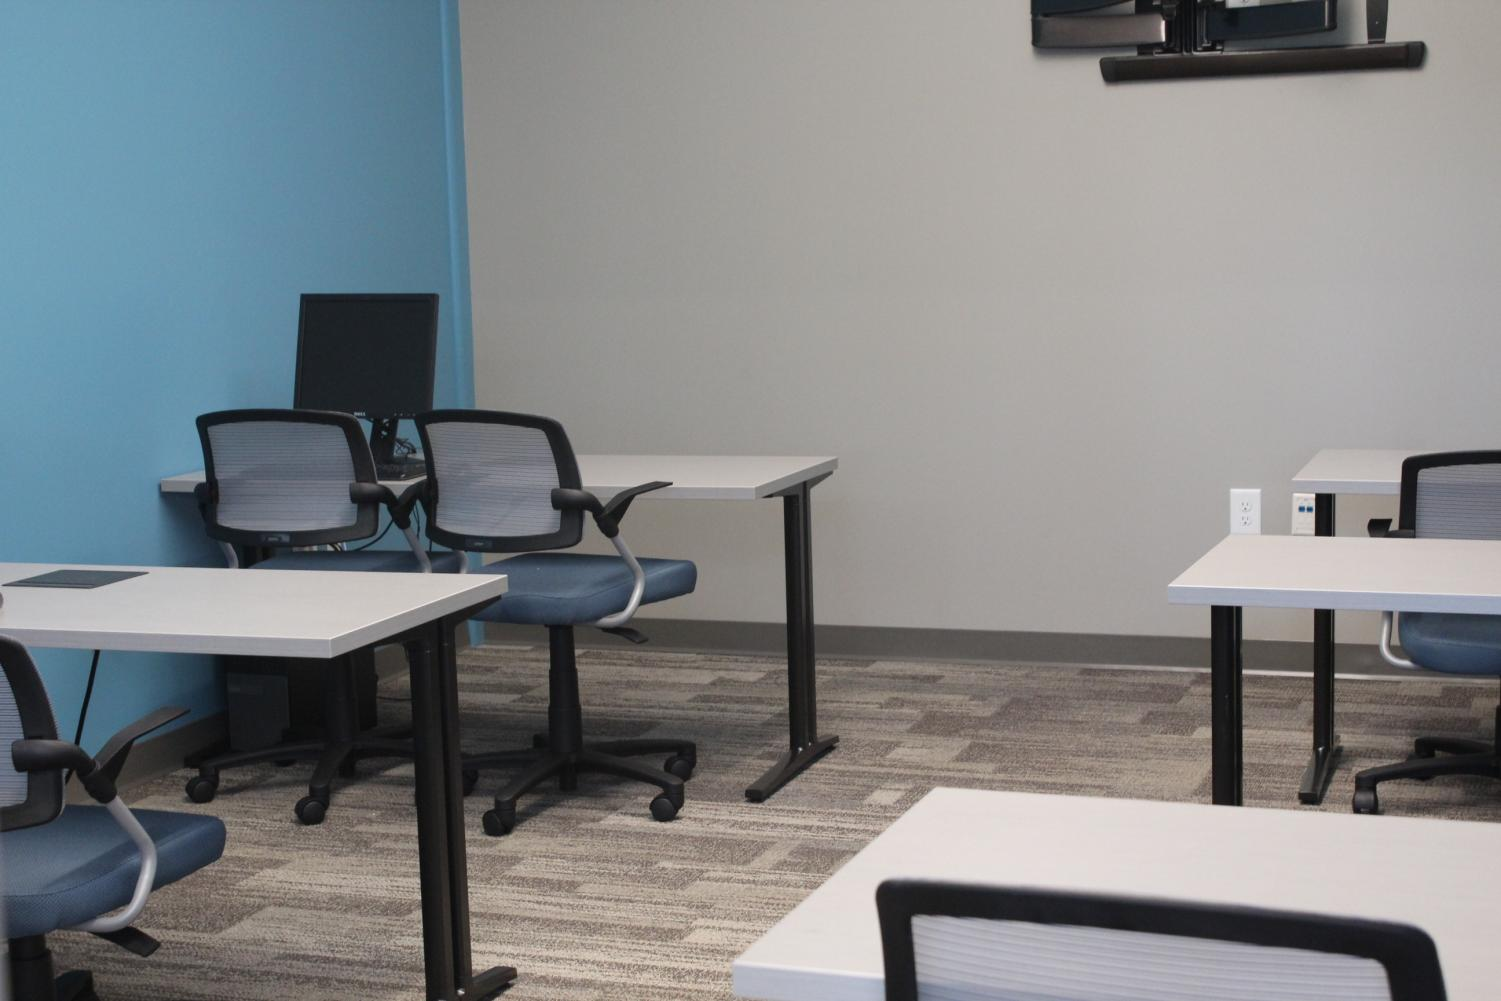 Many+different+teachers+and+students+will+give+classes+on+technology+in+this+room.+The+classes+will+include+subjects+like%2C+how+to+check+email%2C+how+to+use+Microsoft+services.